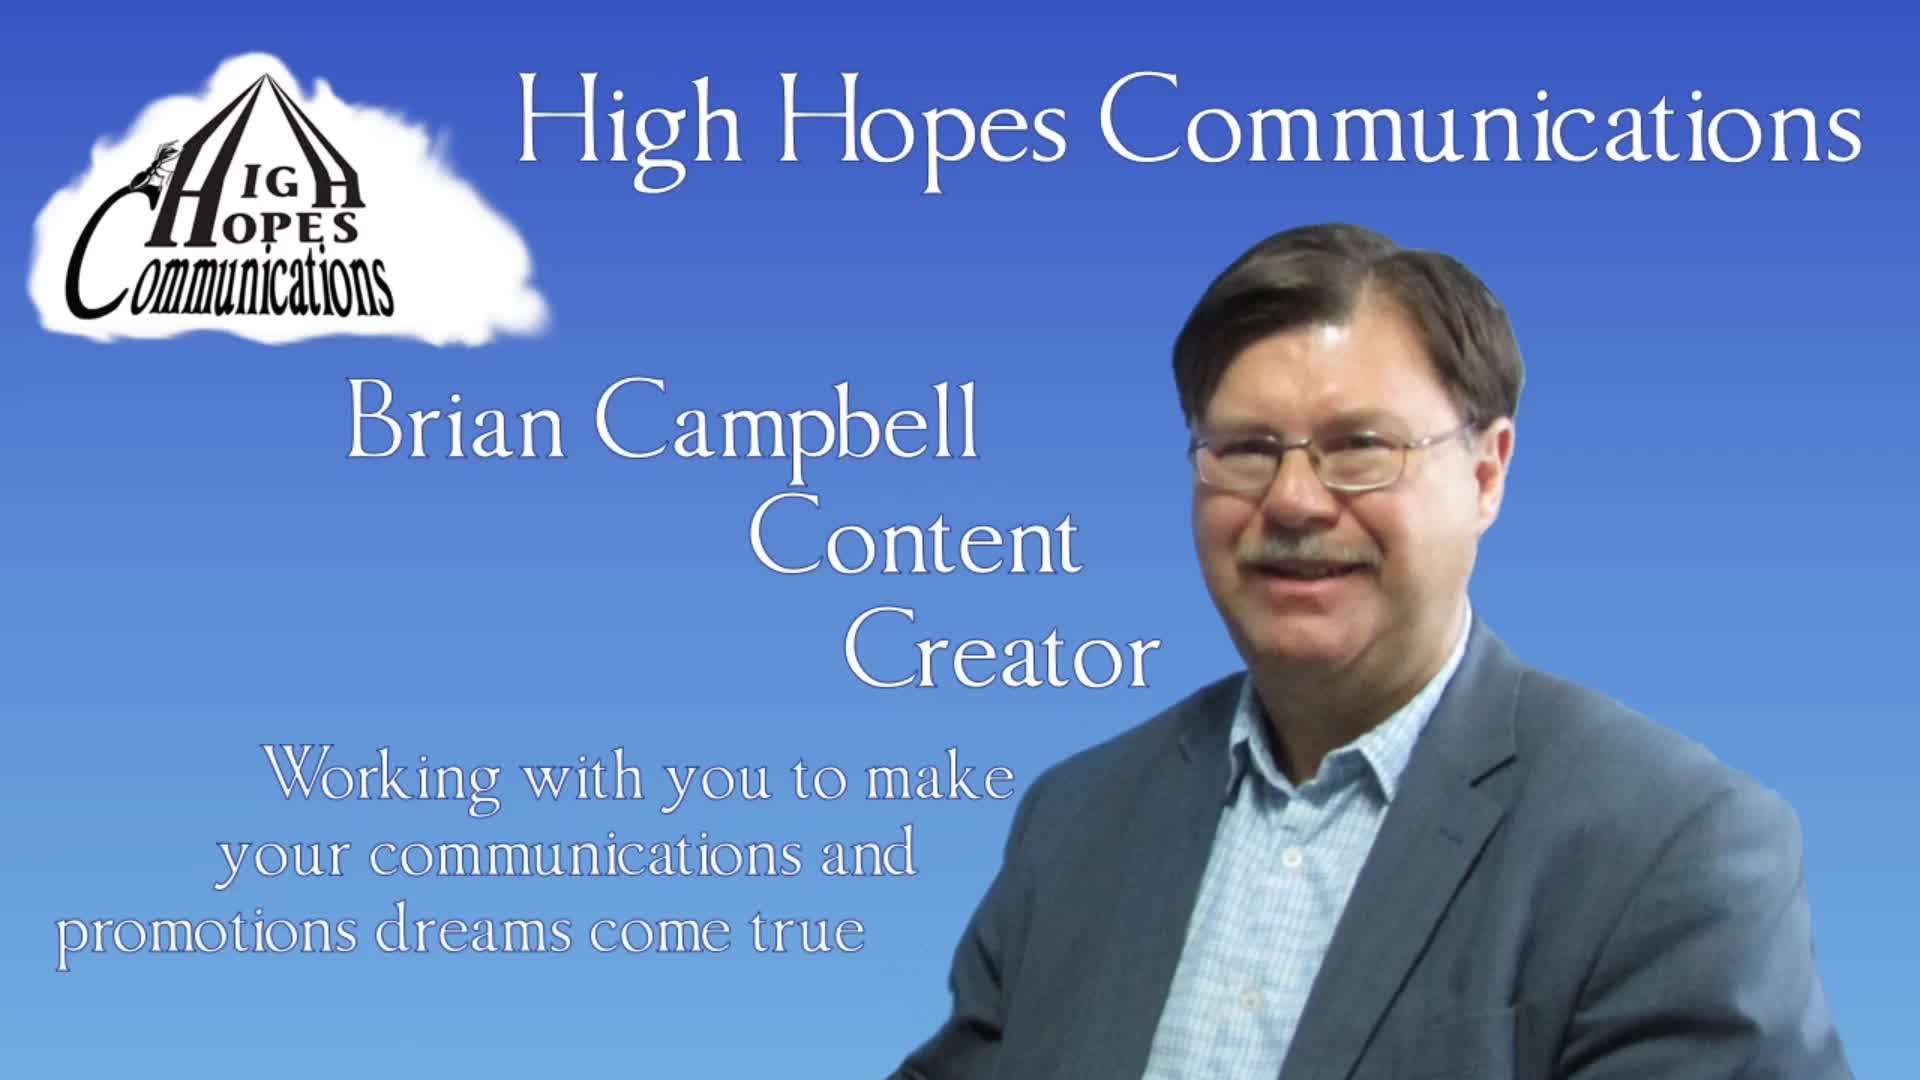 High Hopes Communications - Marketing Consultants & Services - 204-880-5505